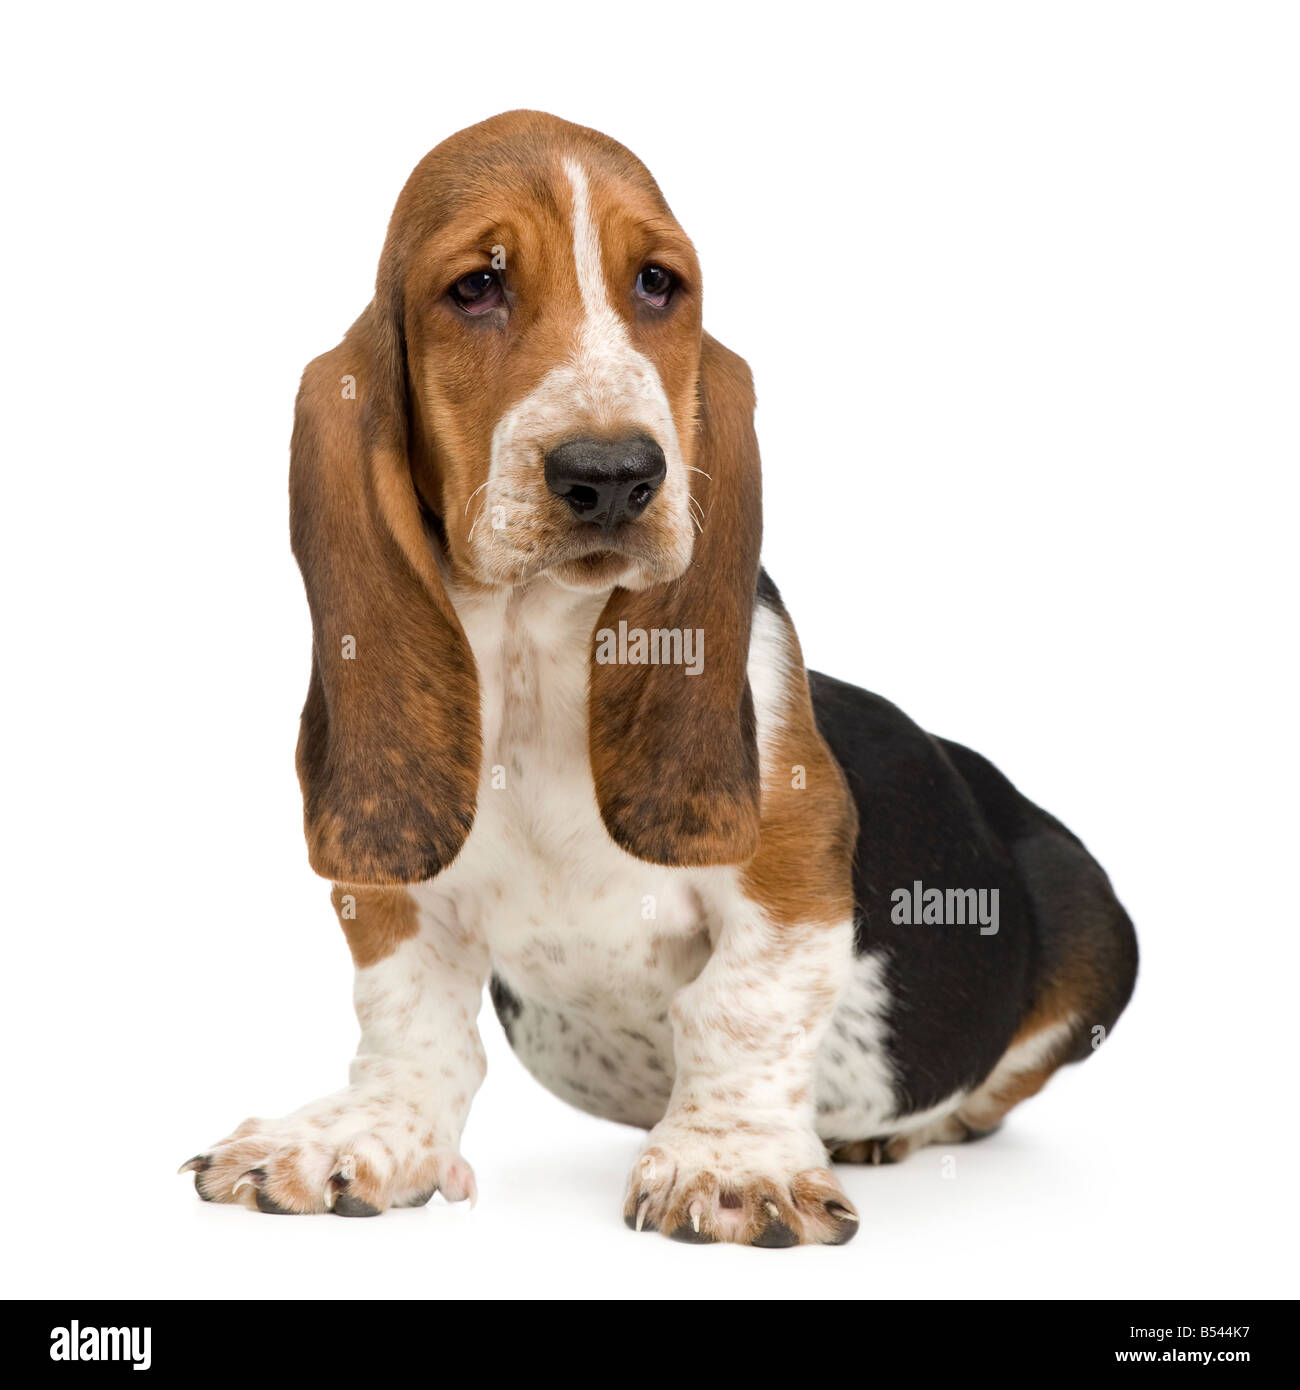 Basset Hound 3 months in front of a white background - Stock Image